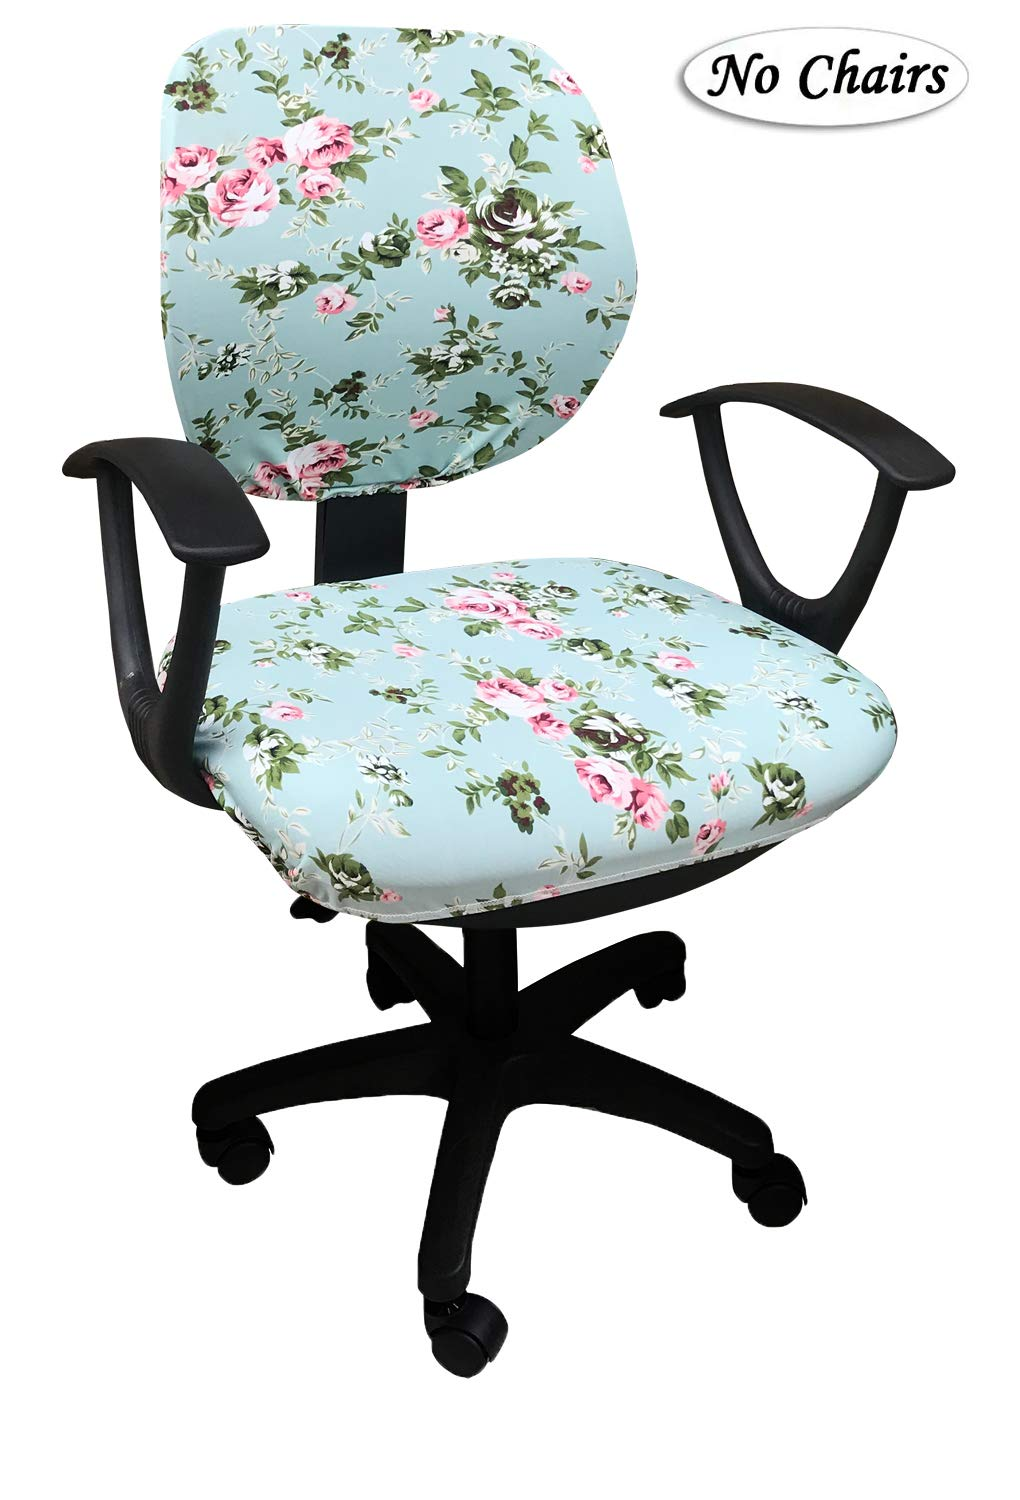 MOCAA Computer Office Chair Covers Universal Stretchable Polyester Washable Rotating Chair Slipcovers,ONLY Chair Covers (Color 15)